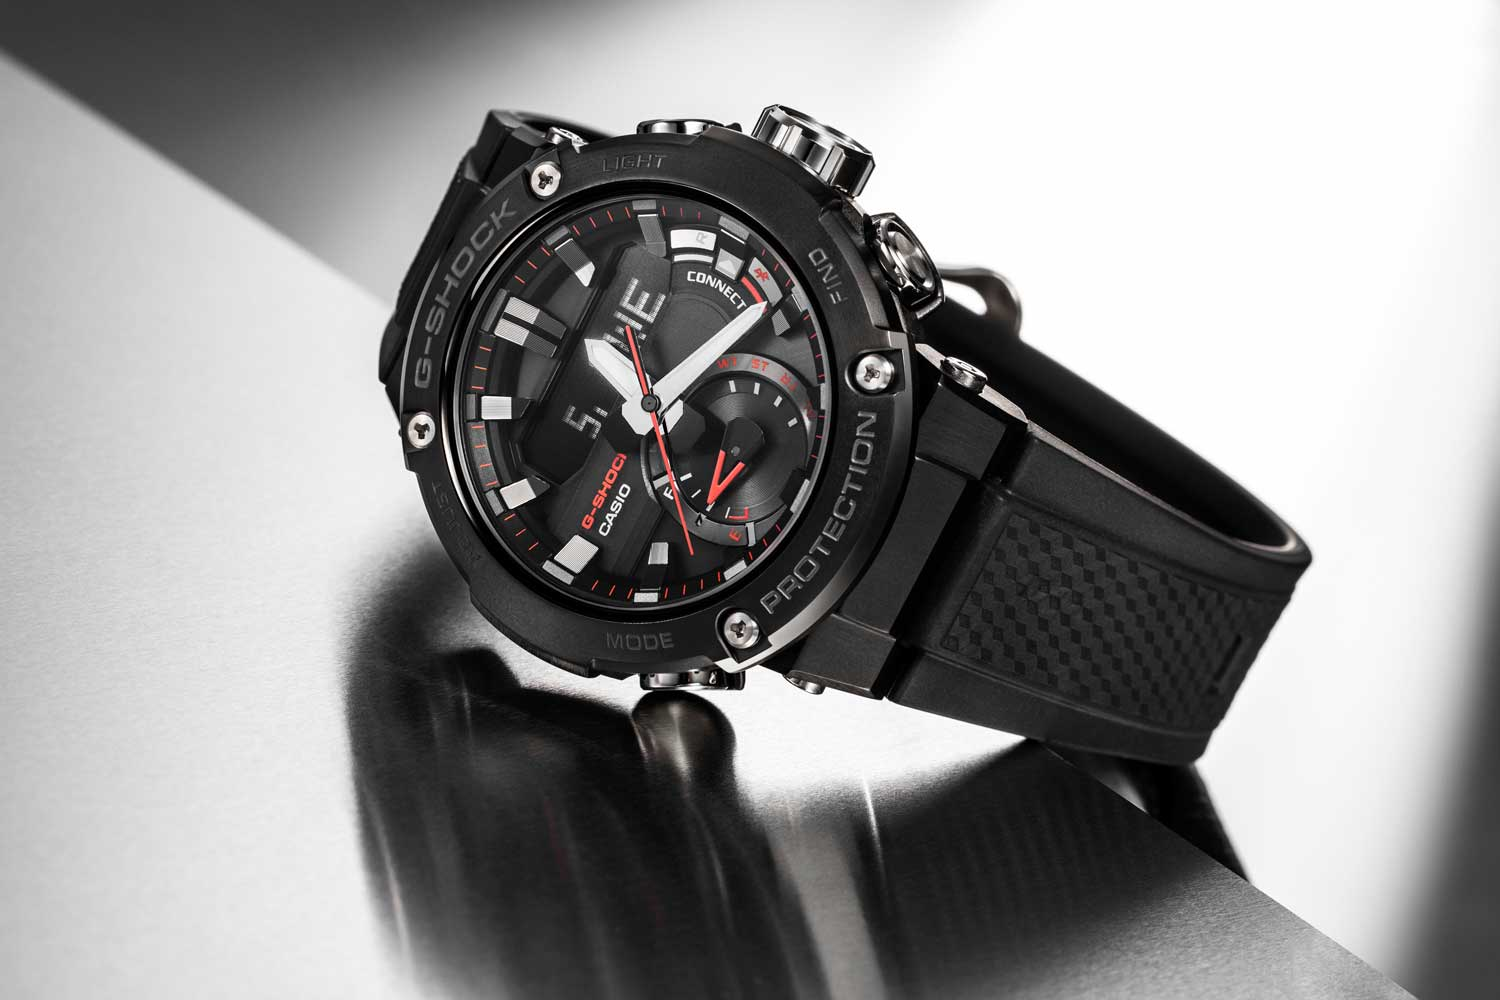 Casio G-Steel Carbon Core Guard GST-B200B-1A (Image © Revolution)